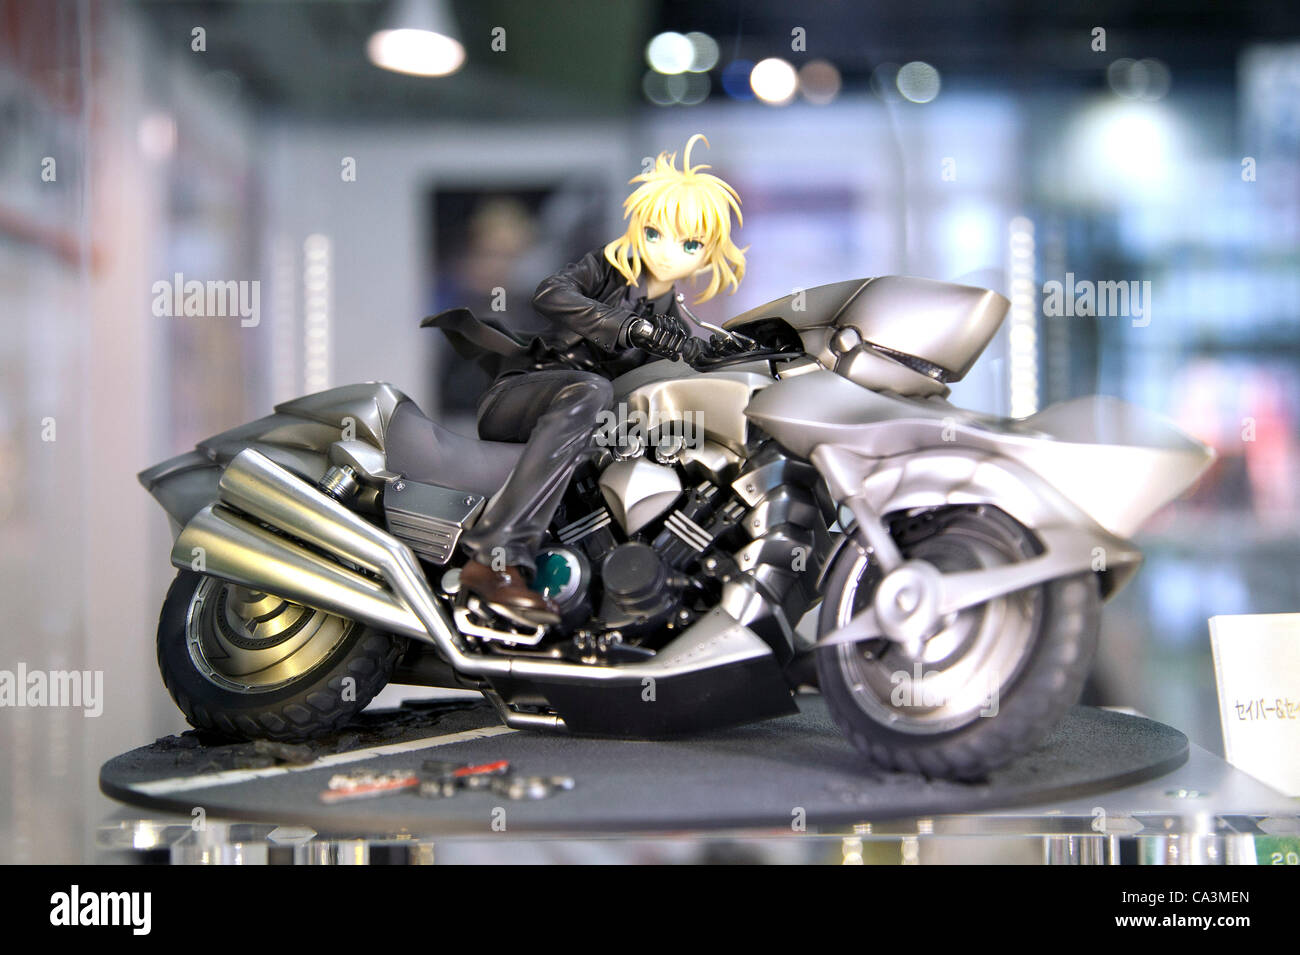 June 2 2012 Tokyo Japan Fate Zero Anime Toys Are Displayed For